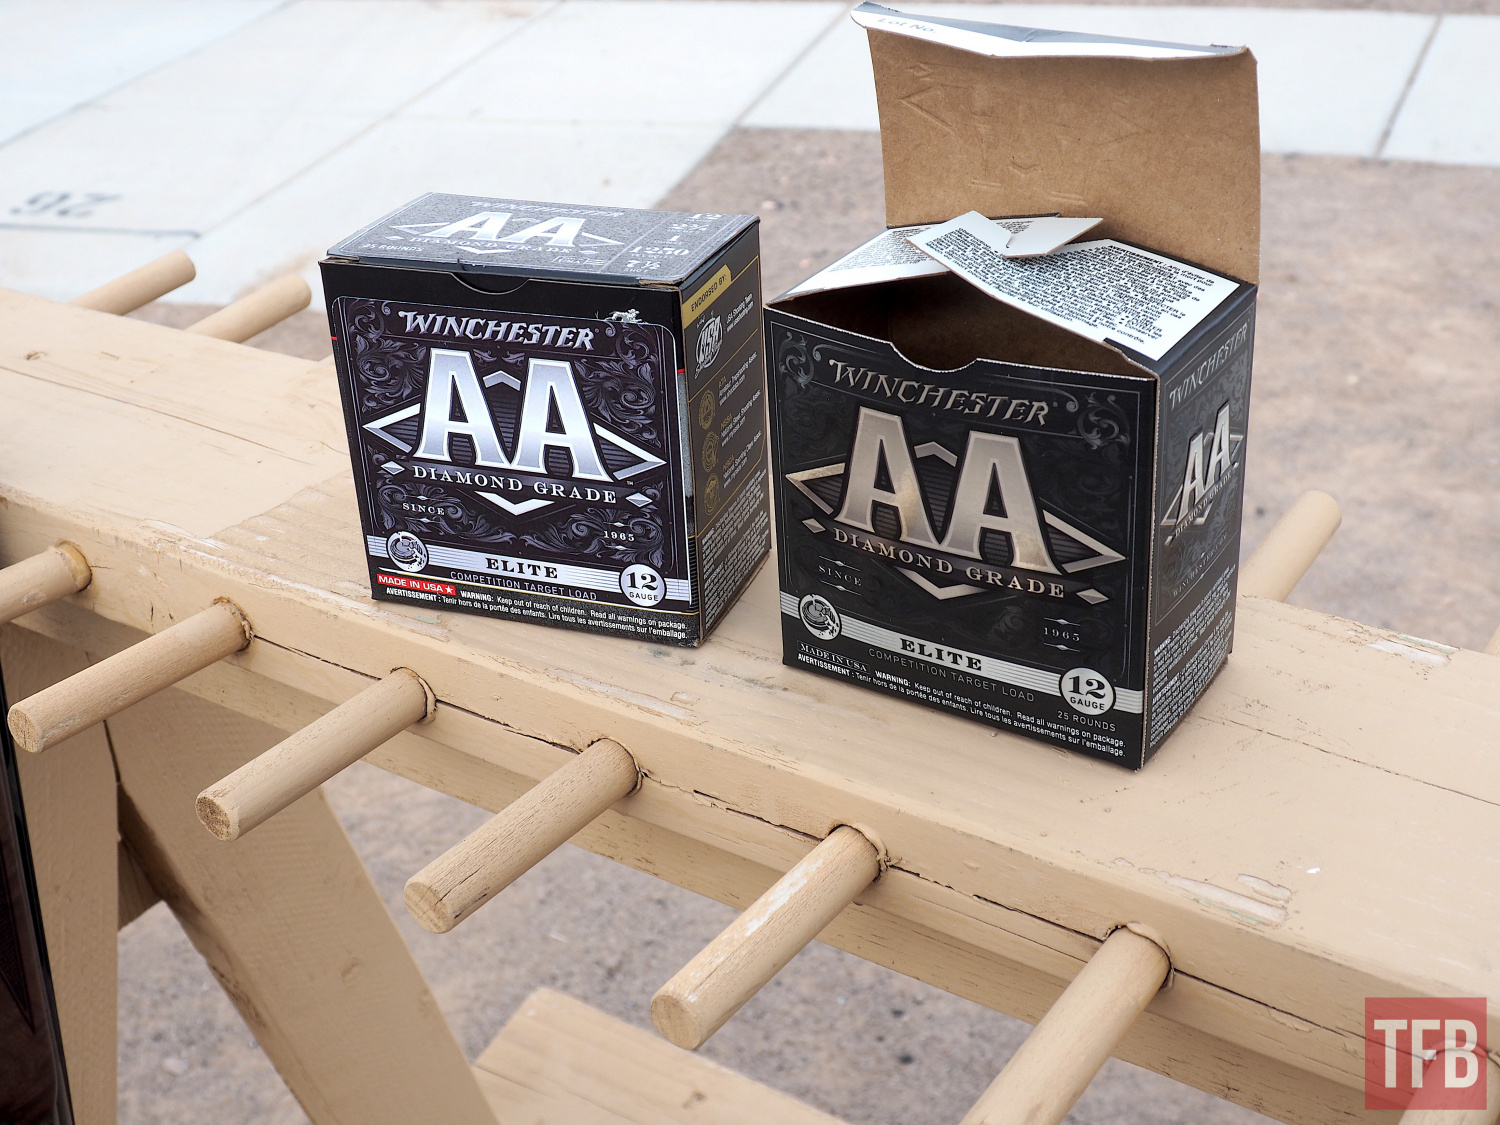 New AA Diamond Grade Shotshells with 8% antimony